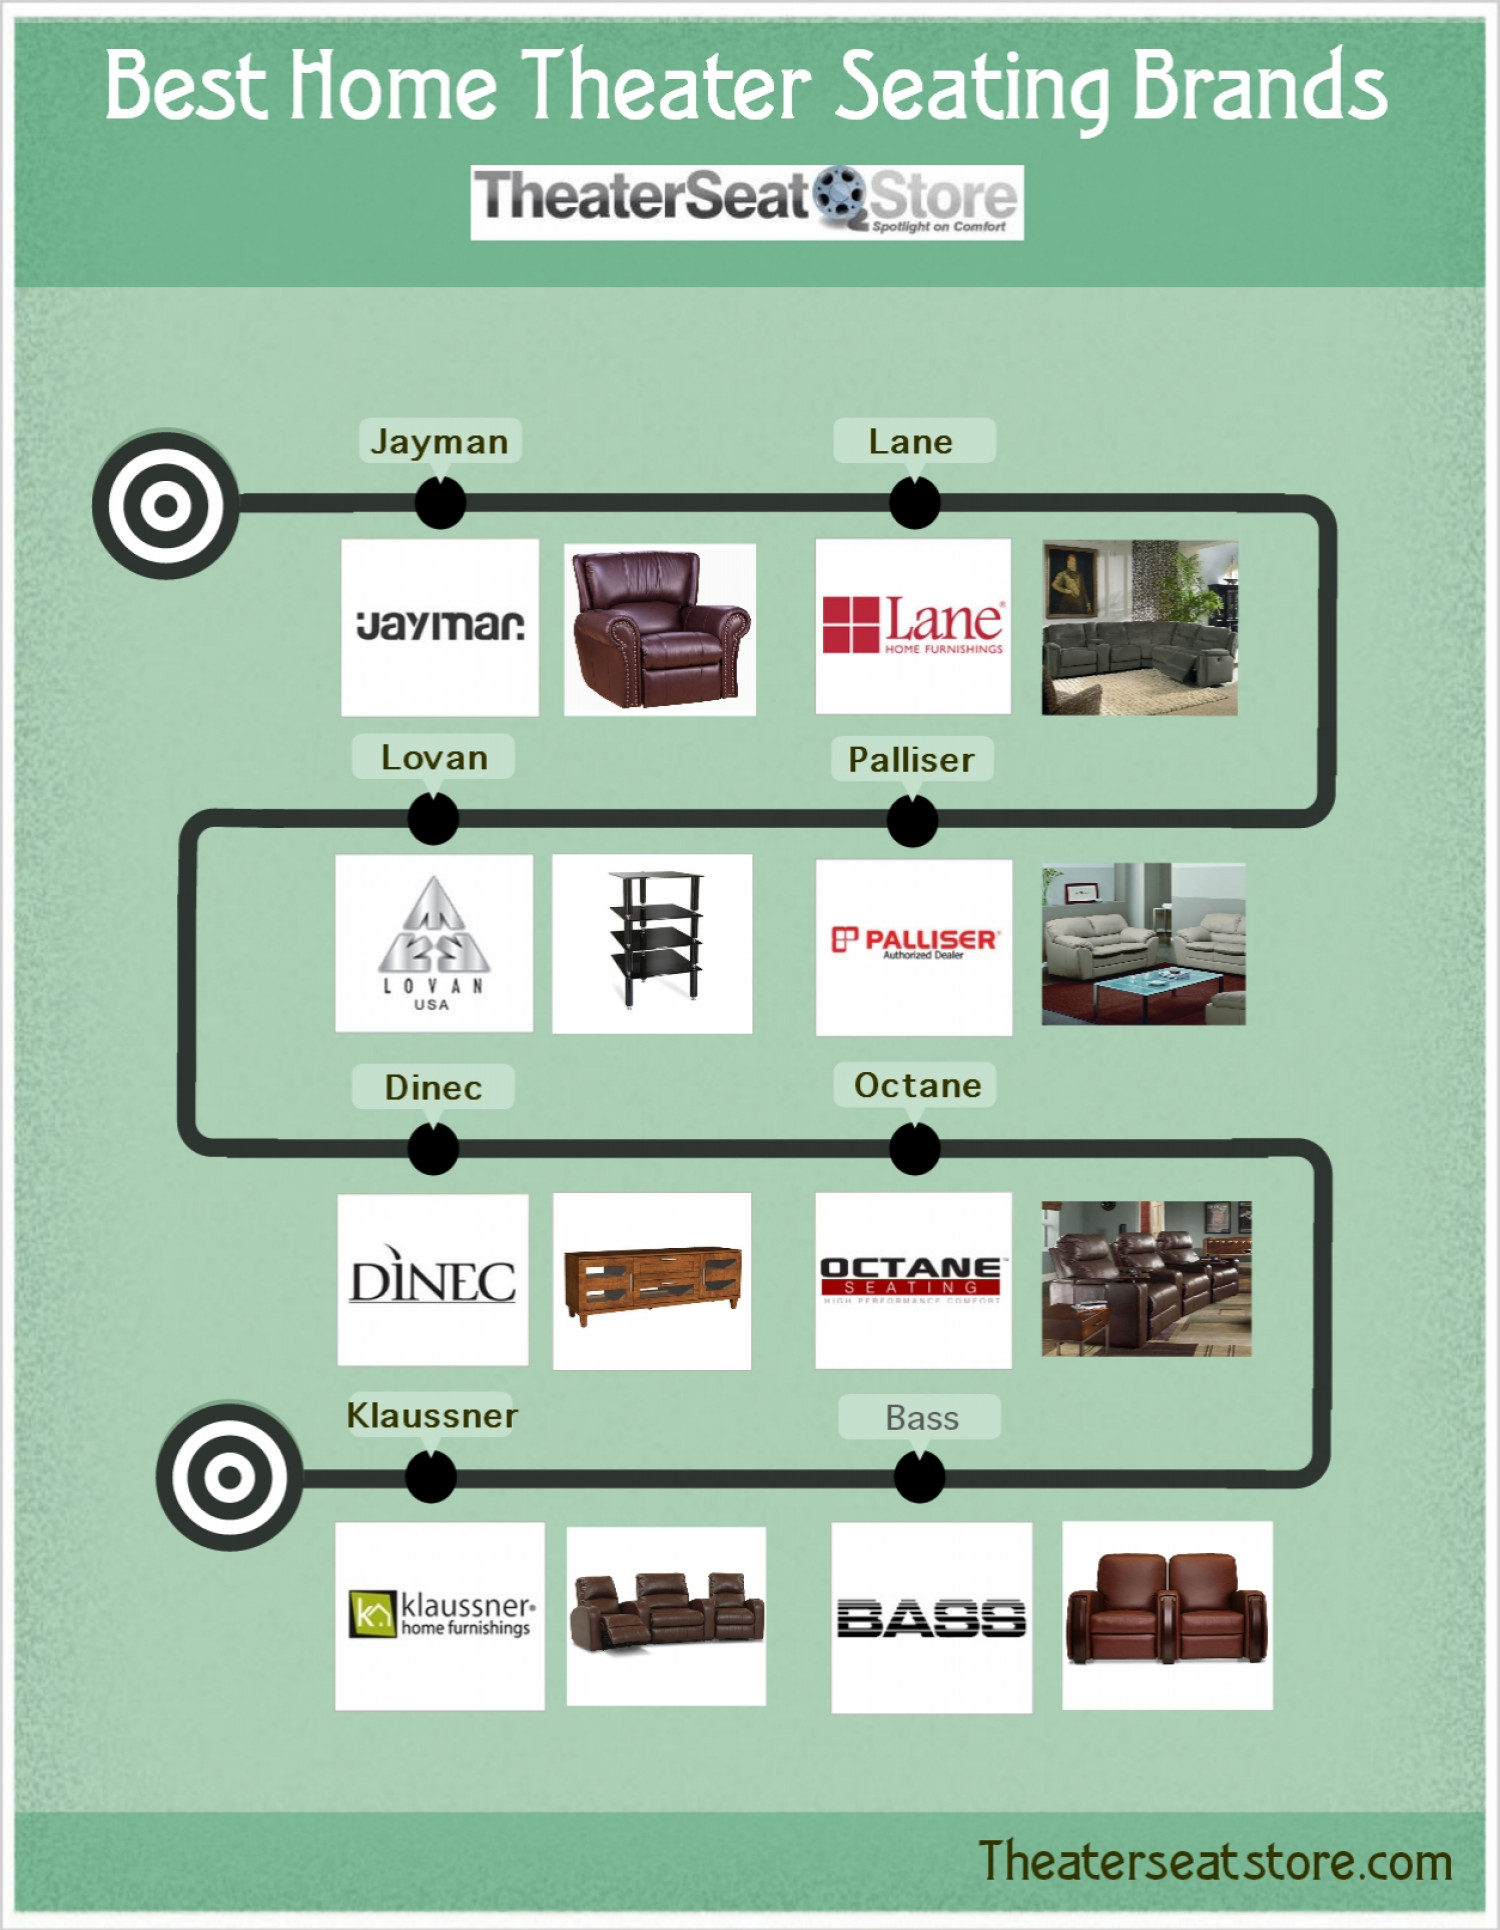 Best Home Thearter Seating Brands [Infographic] Infographic